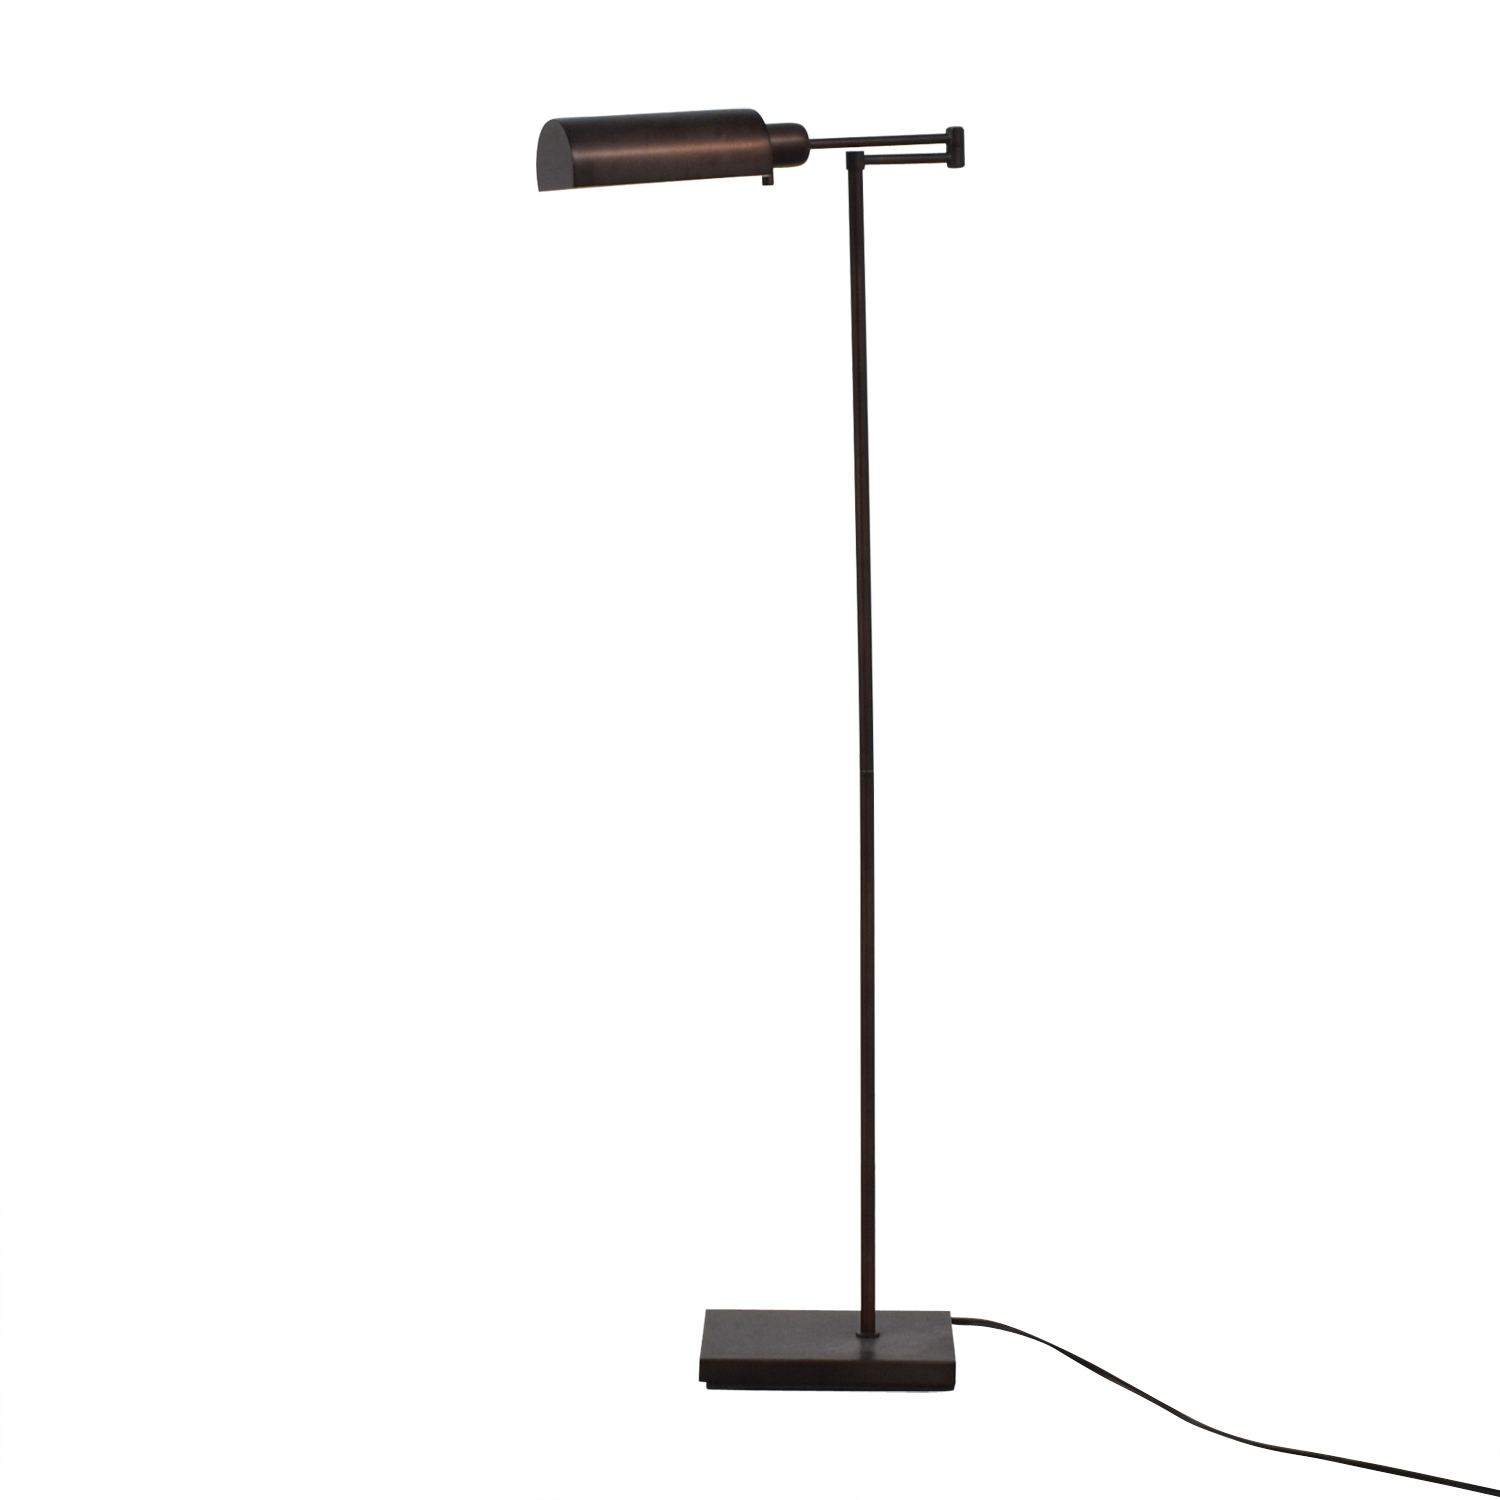 Crate & Barrel Crate & Barrel Adams Bronze Pharmacy Floor Lamp dimensions